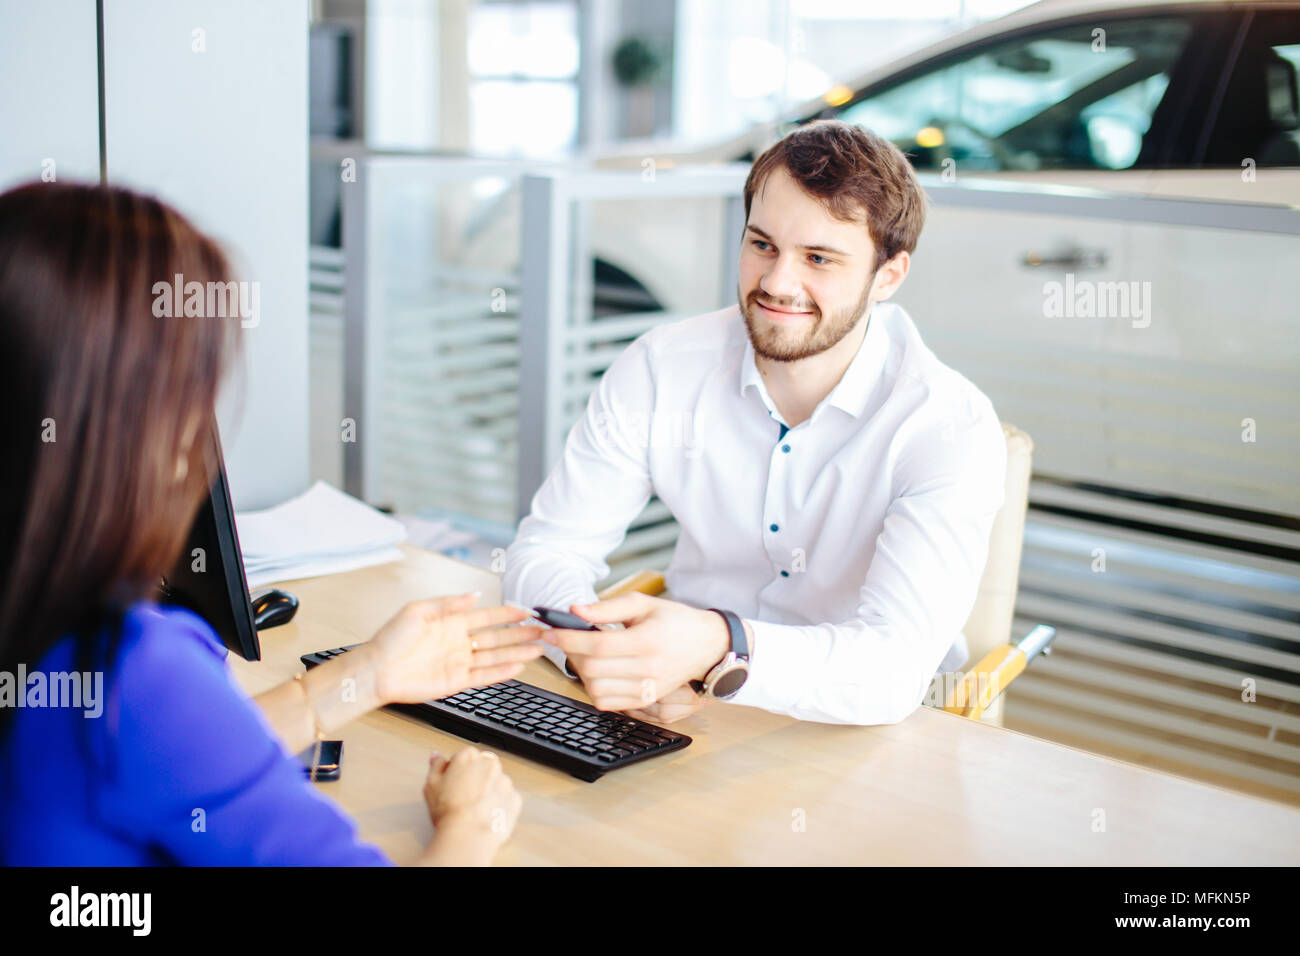 Handsome smiling salesman passing the keys to a purchaser woman after signing a contract - Stock Image